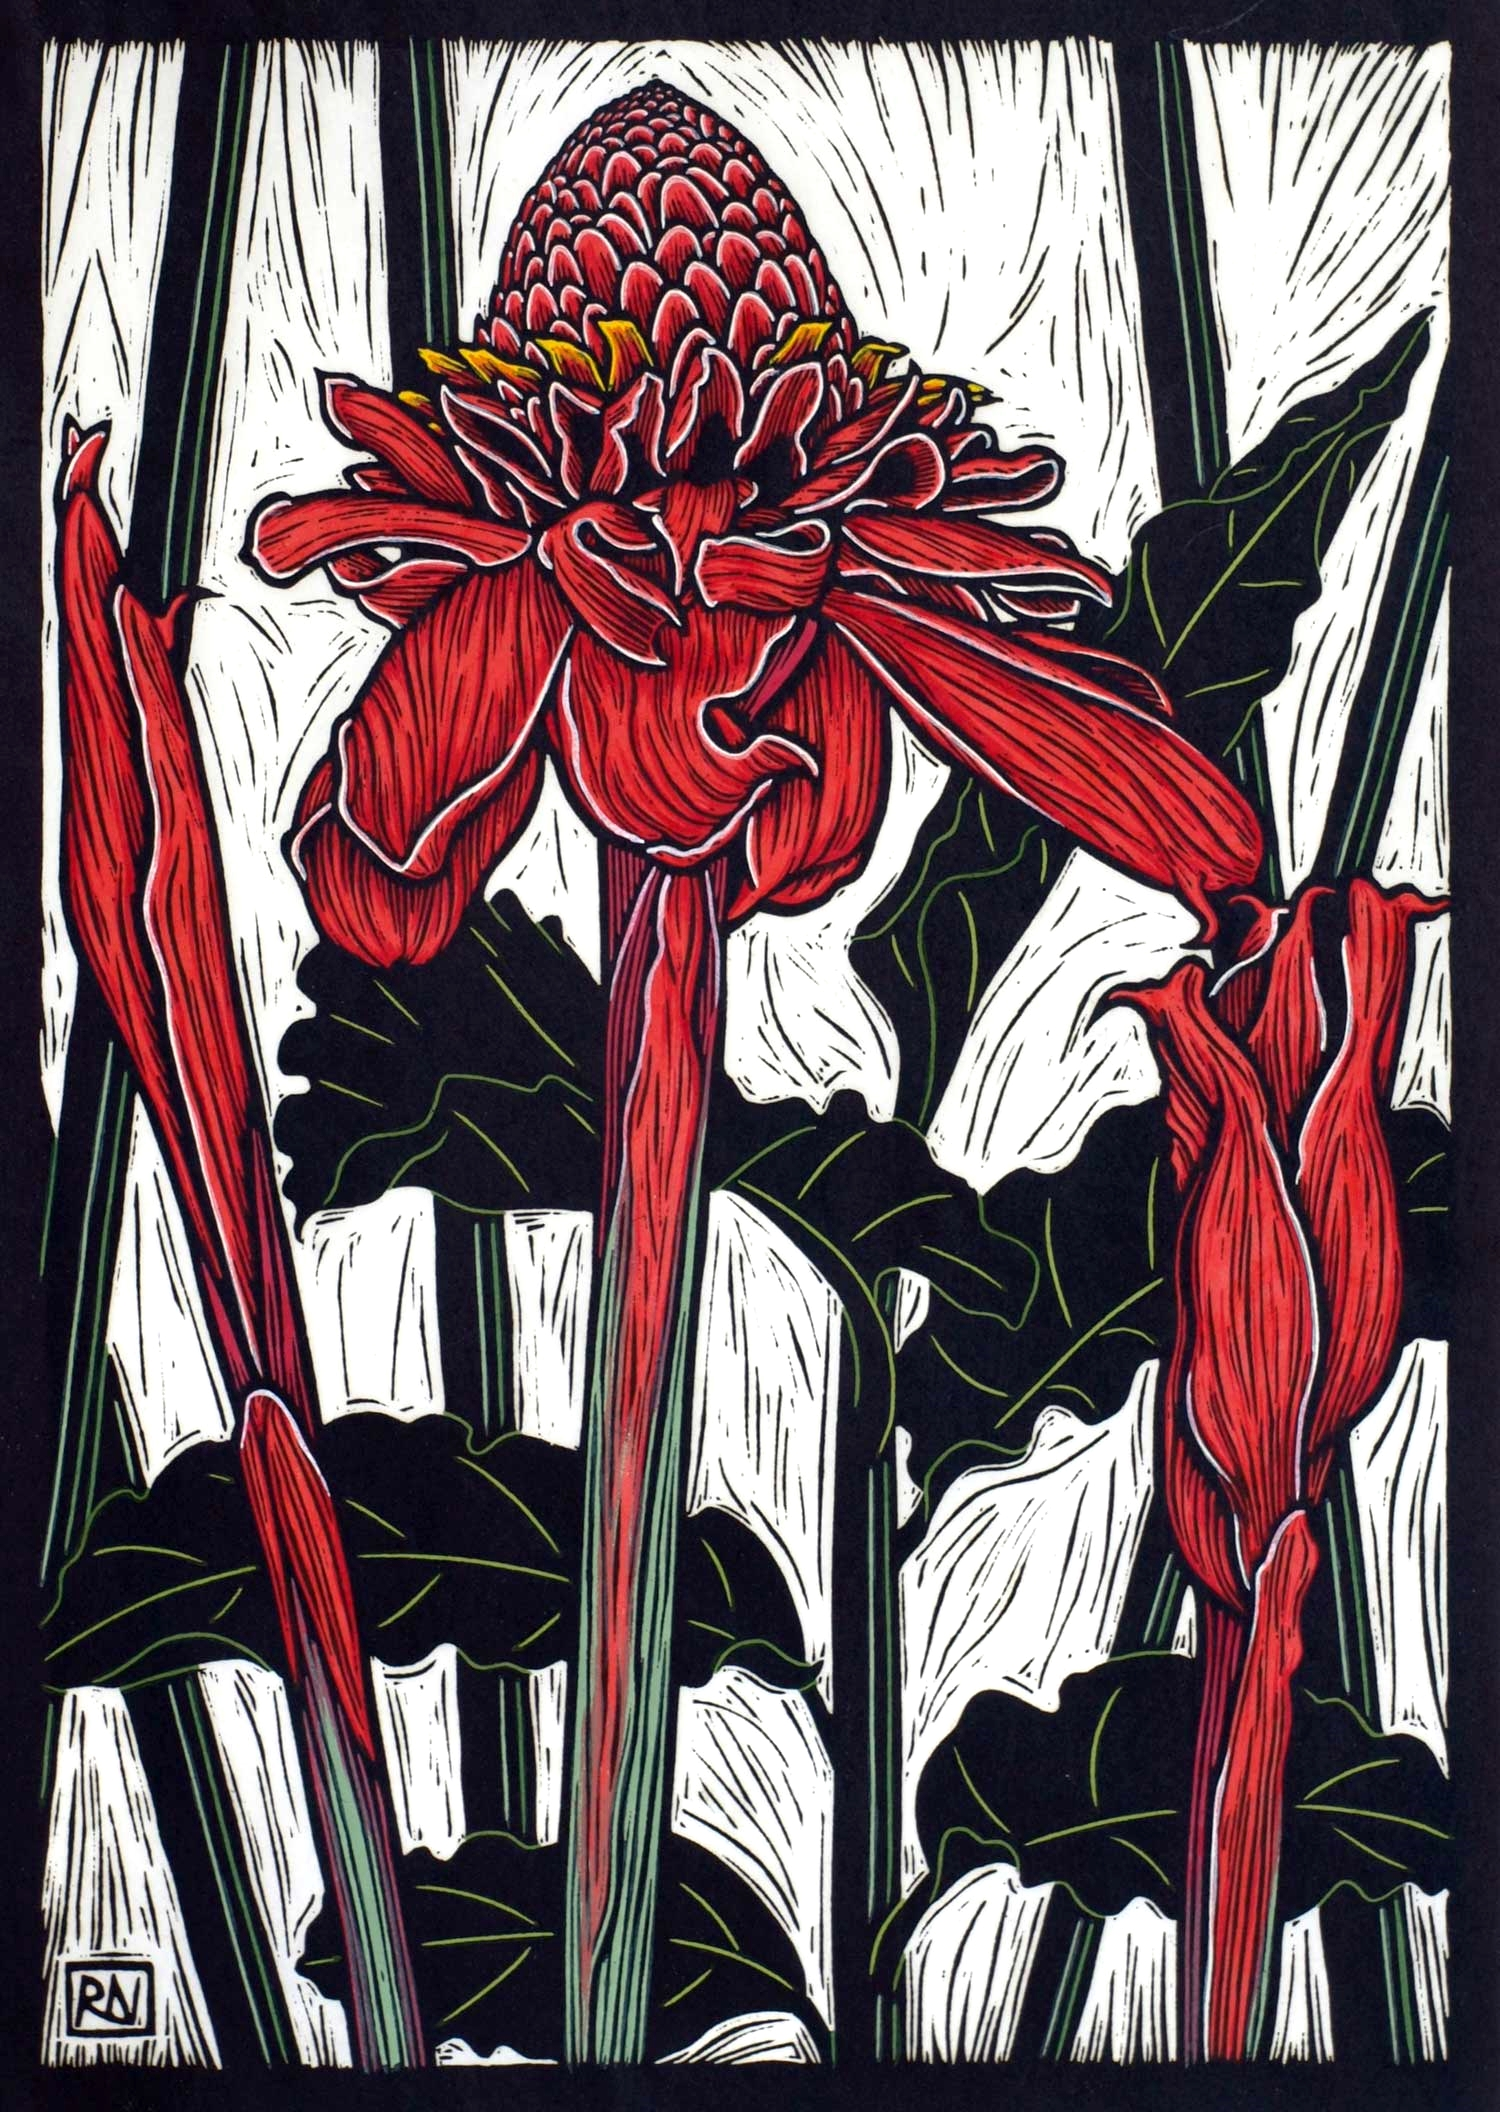 TORCH GINGER  49 X 35 CM, EDITION OF 50  HAND-COLOURED LINOCUT ON HANDMADE JAPANESE PAPER  $1,100